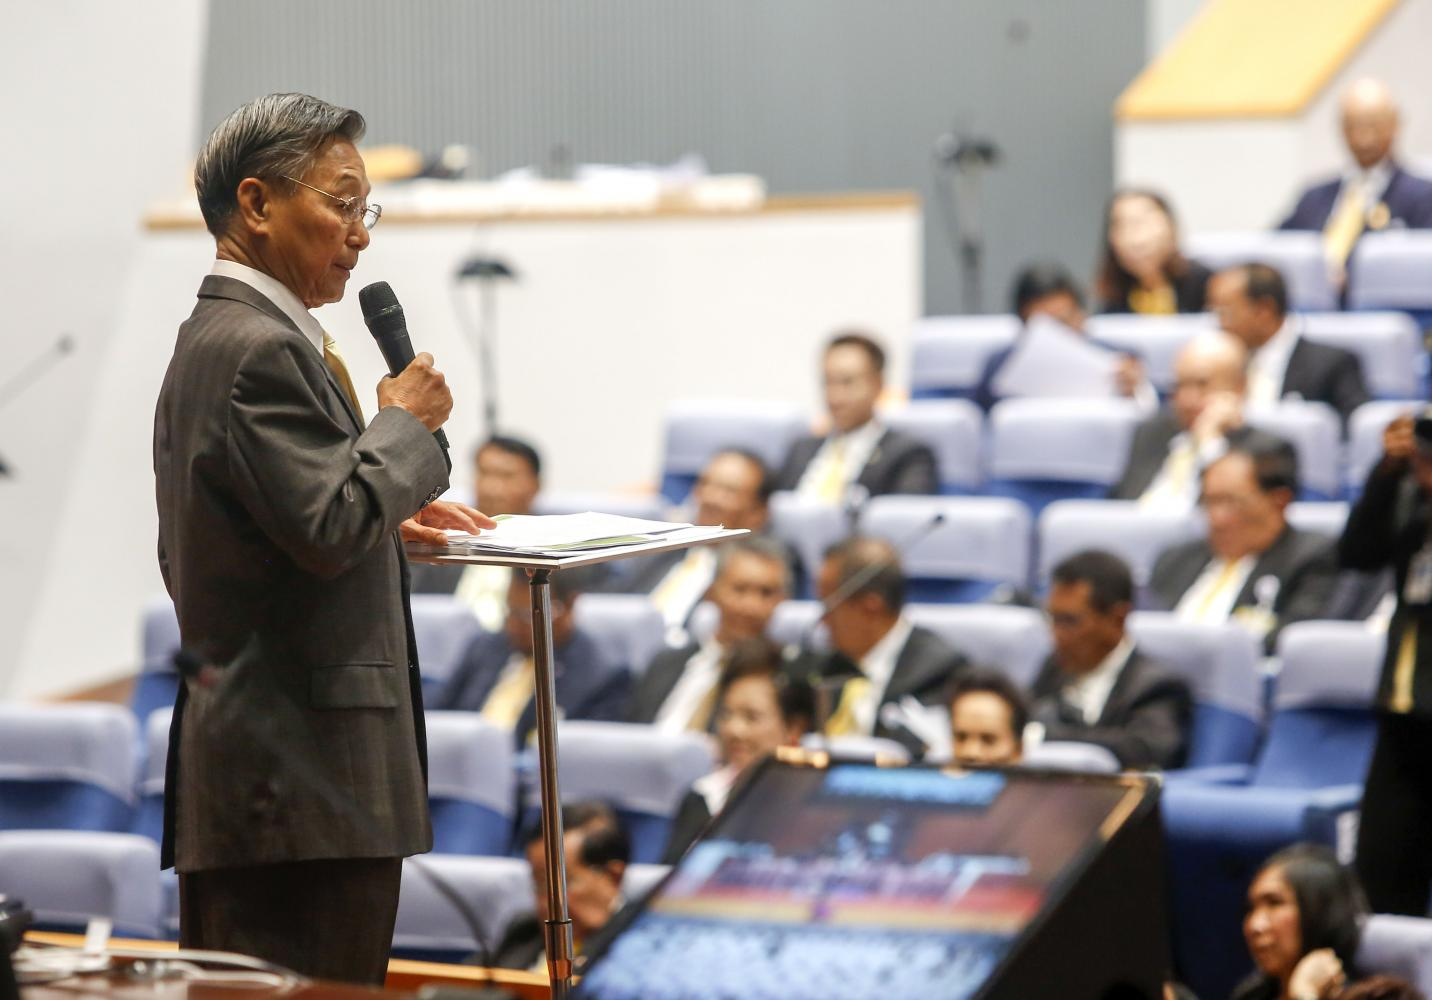 House Speaker Chuan Leekpai speaks to 500 newly elected MPs on Thursday. (Photo by Pattarapong Chatpattarasill)